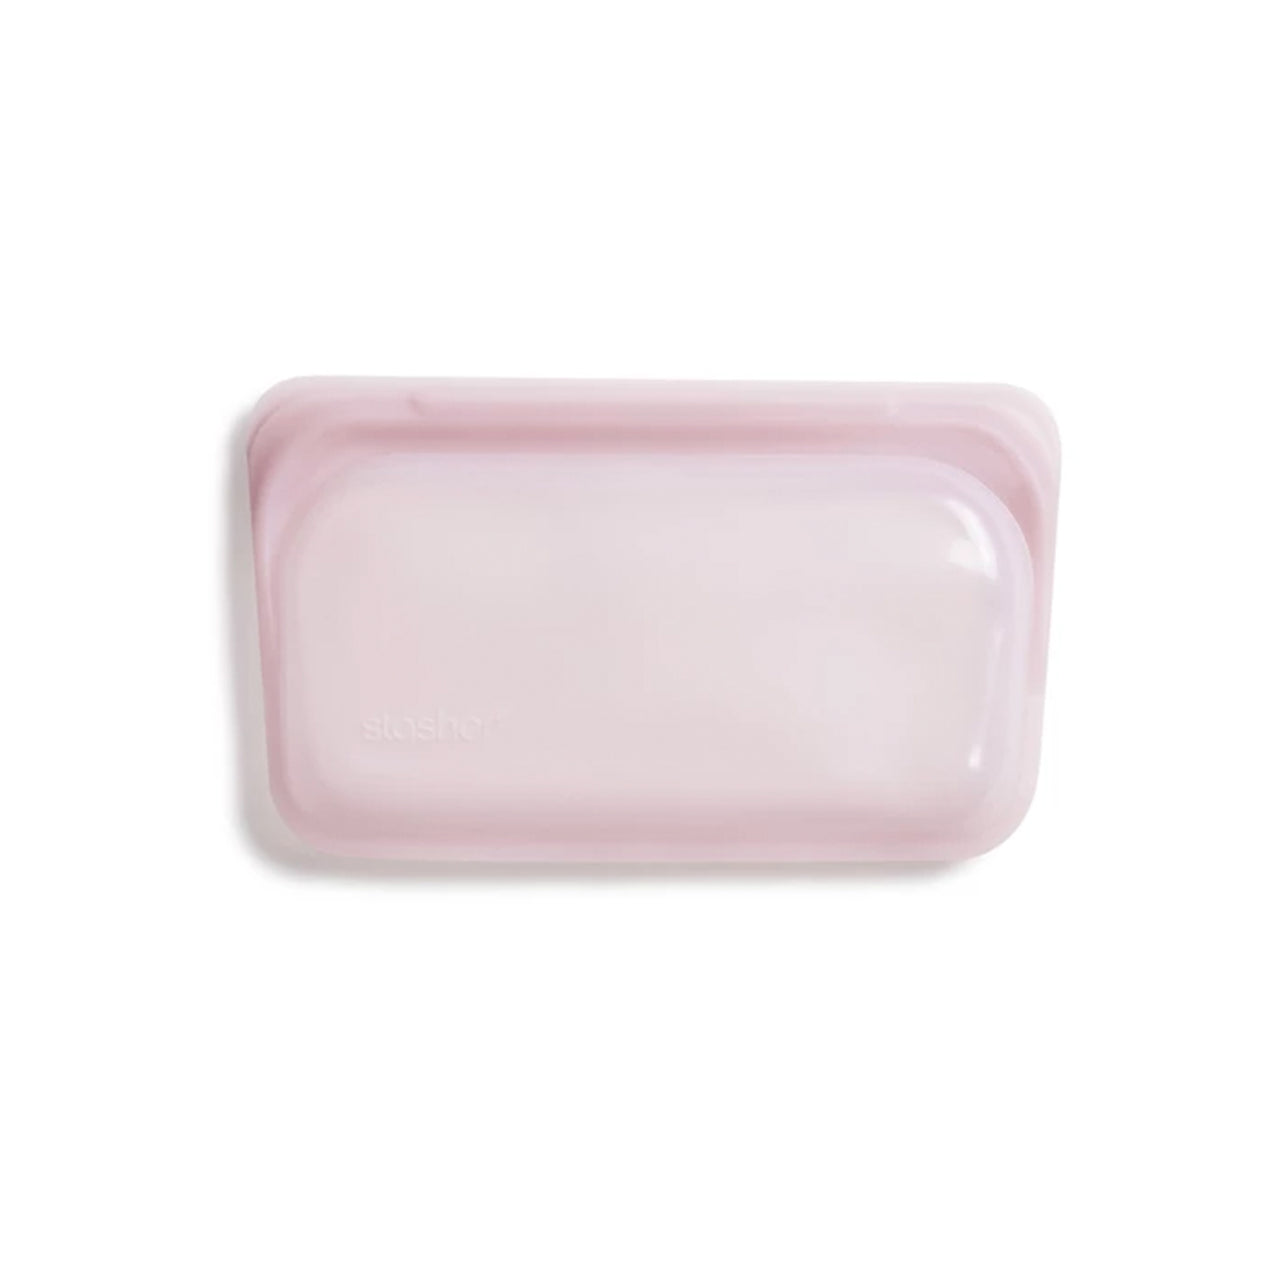 Snack: Silicone Storage, Rose Quartz